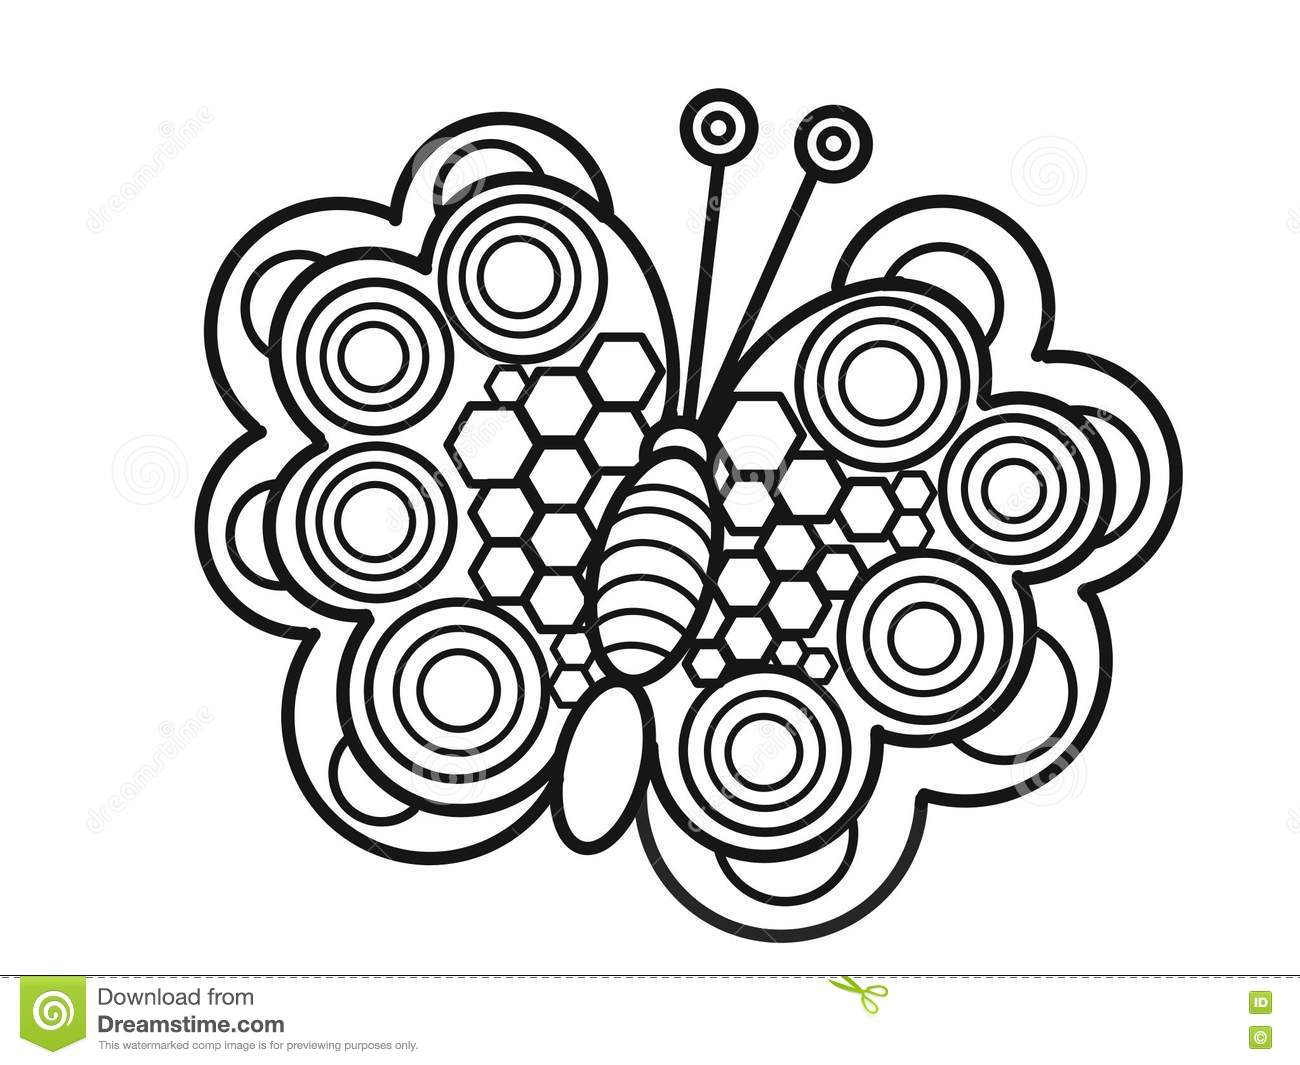 Zentangle Spider Web Coloring Page • FREE Printable PDF from ... | 1065x1300